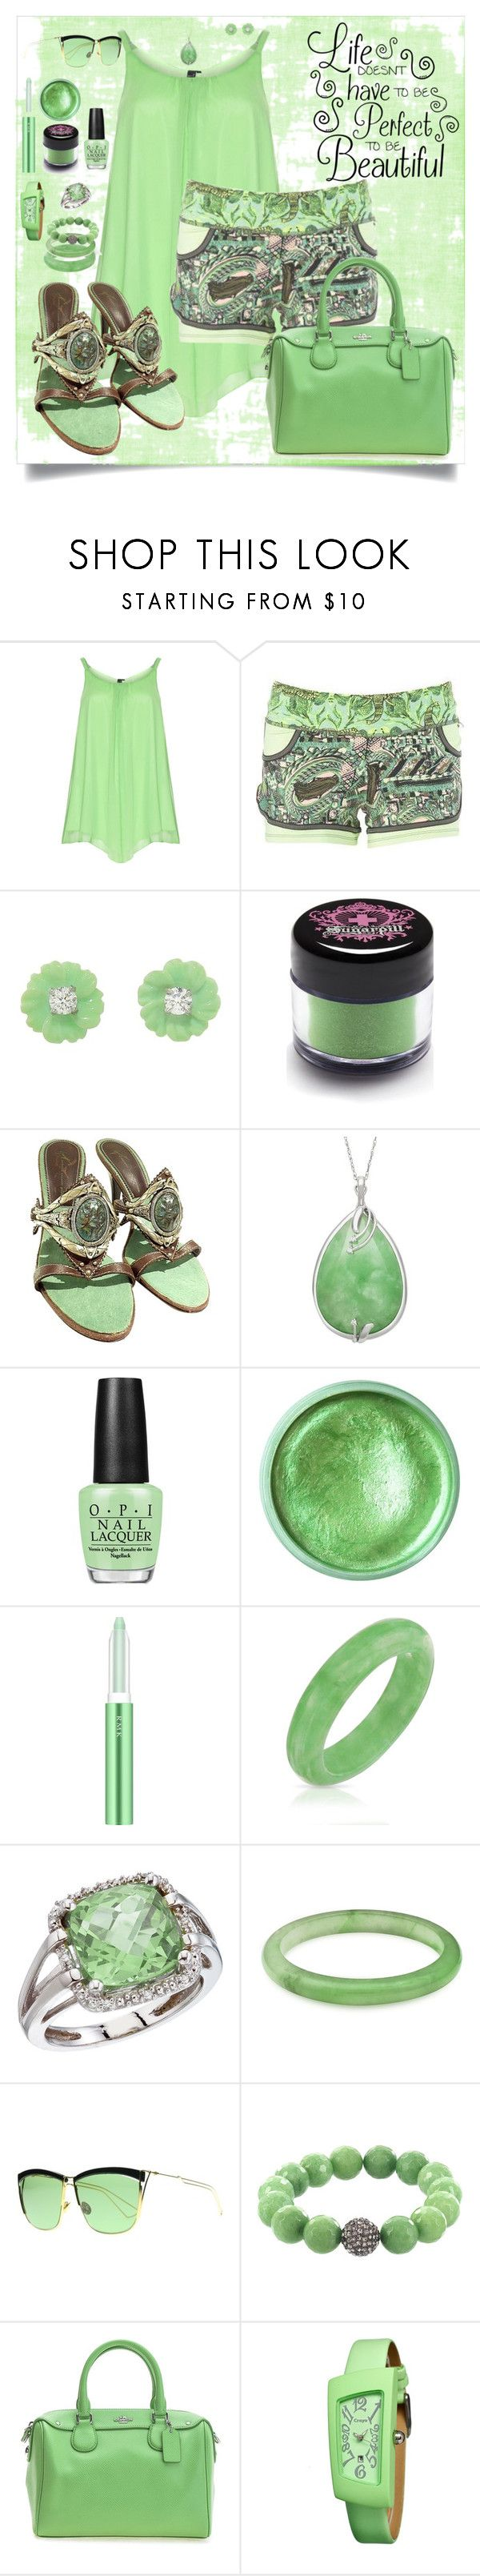 """Leaf greens"" by designcat-colour ❤ liked on Polyvore featuring Yoek, Irene Neuwirth, Sugarpill, Giuseppe Zanotti, OPI, RMK, Bling Jewelry, BillyTheTree, Christian Dior and Crayo"